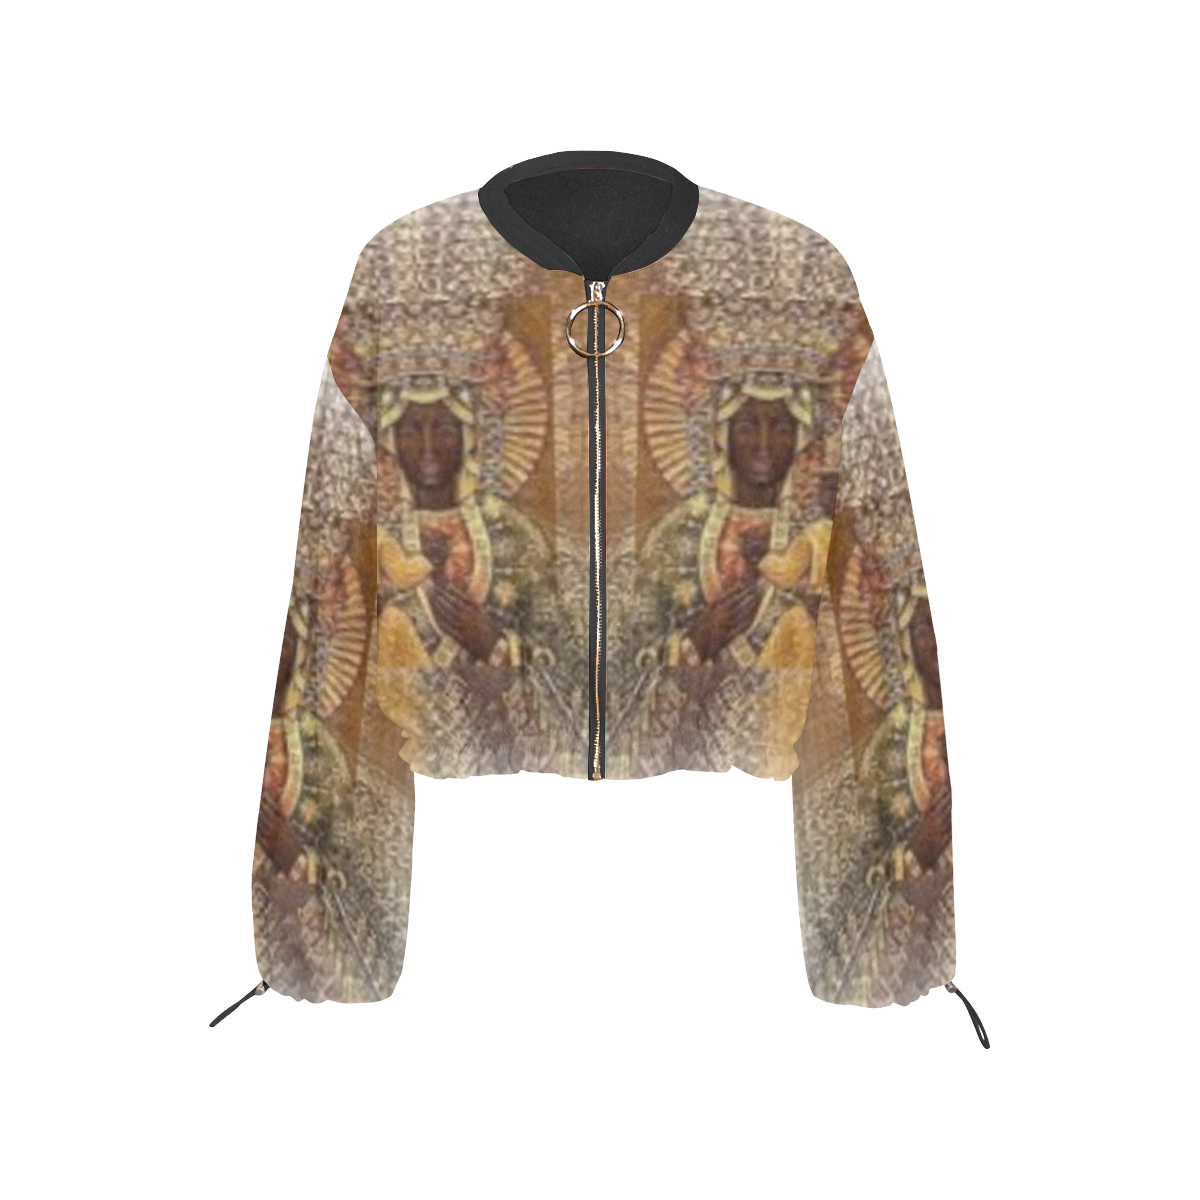 Black Madonna Cropped Chiffon Jacket - 5 variations